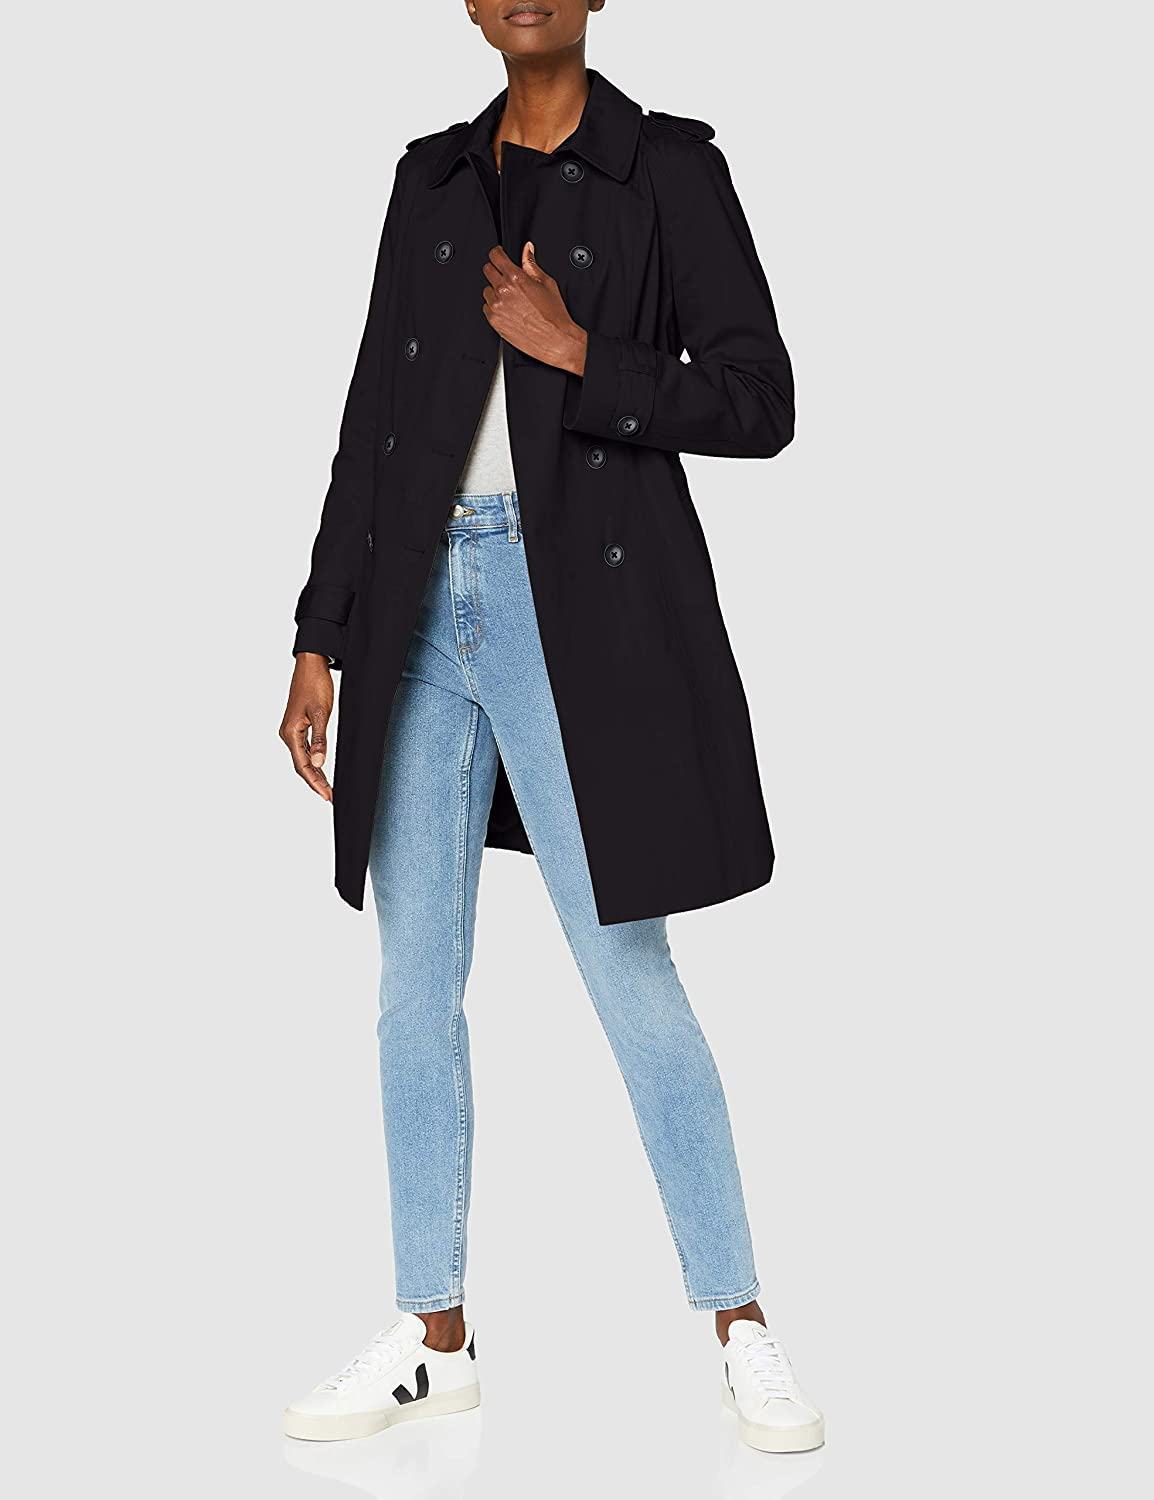 MERAKI Women's Trench Coat